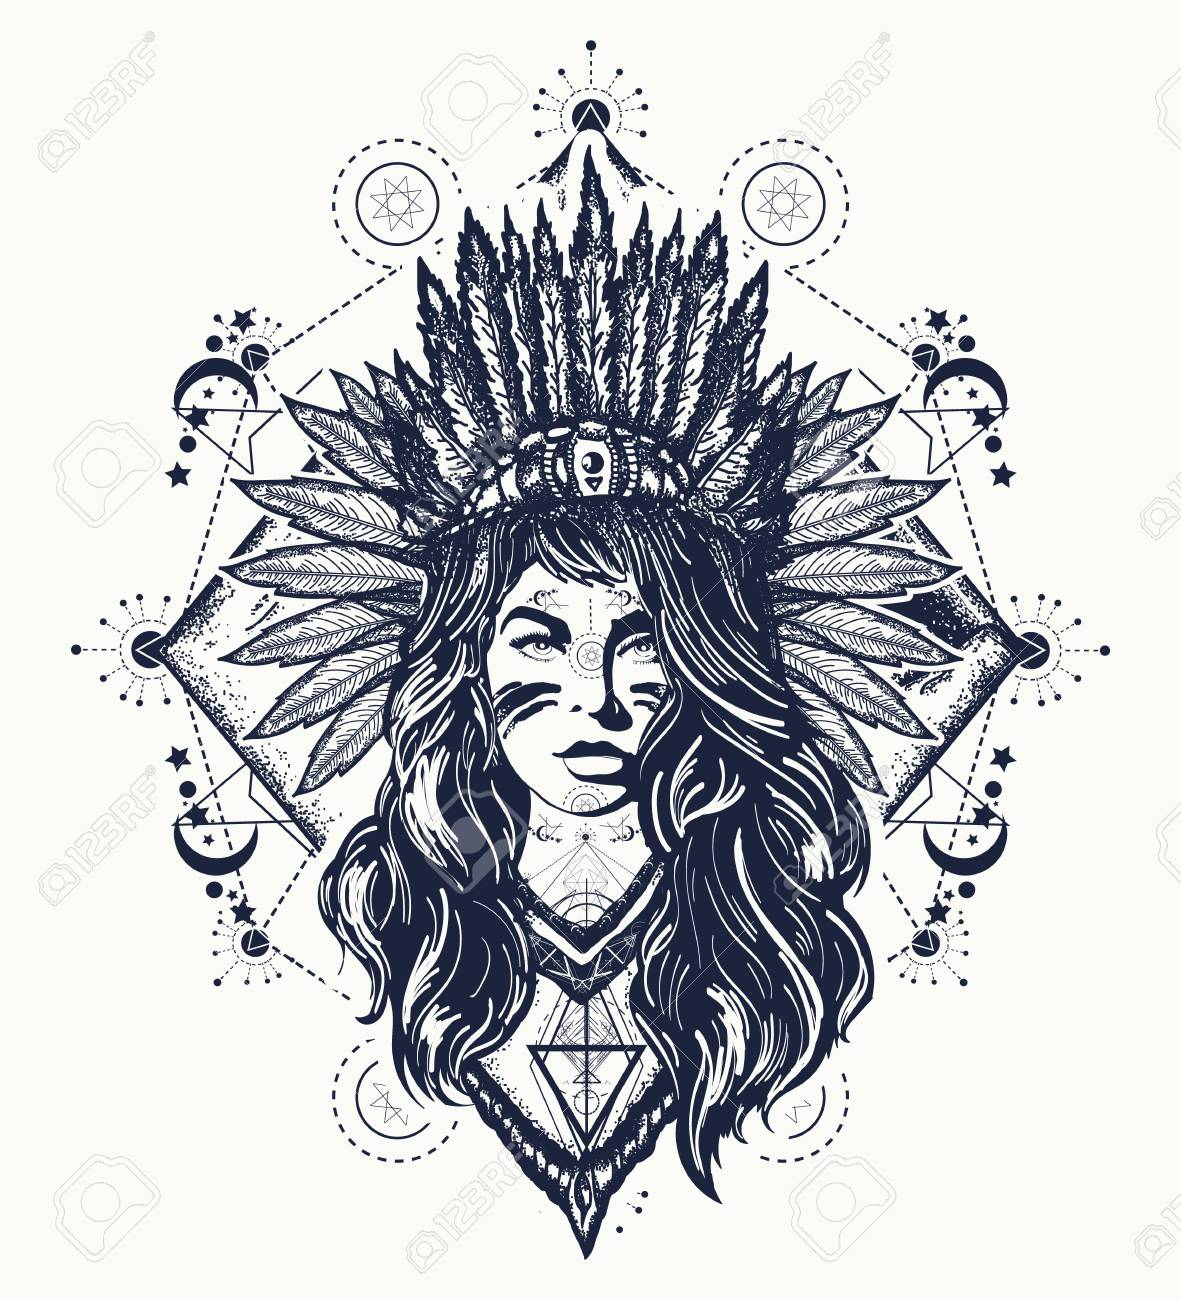 Tribal Woman Tattoo And T Shirt Design Royalty Free Cliparts